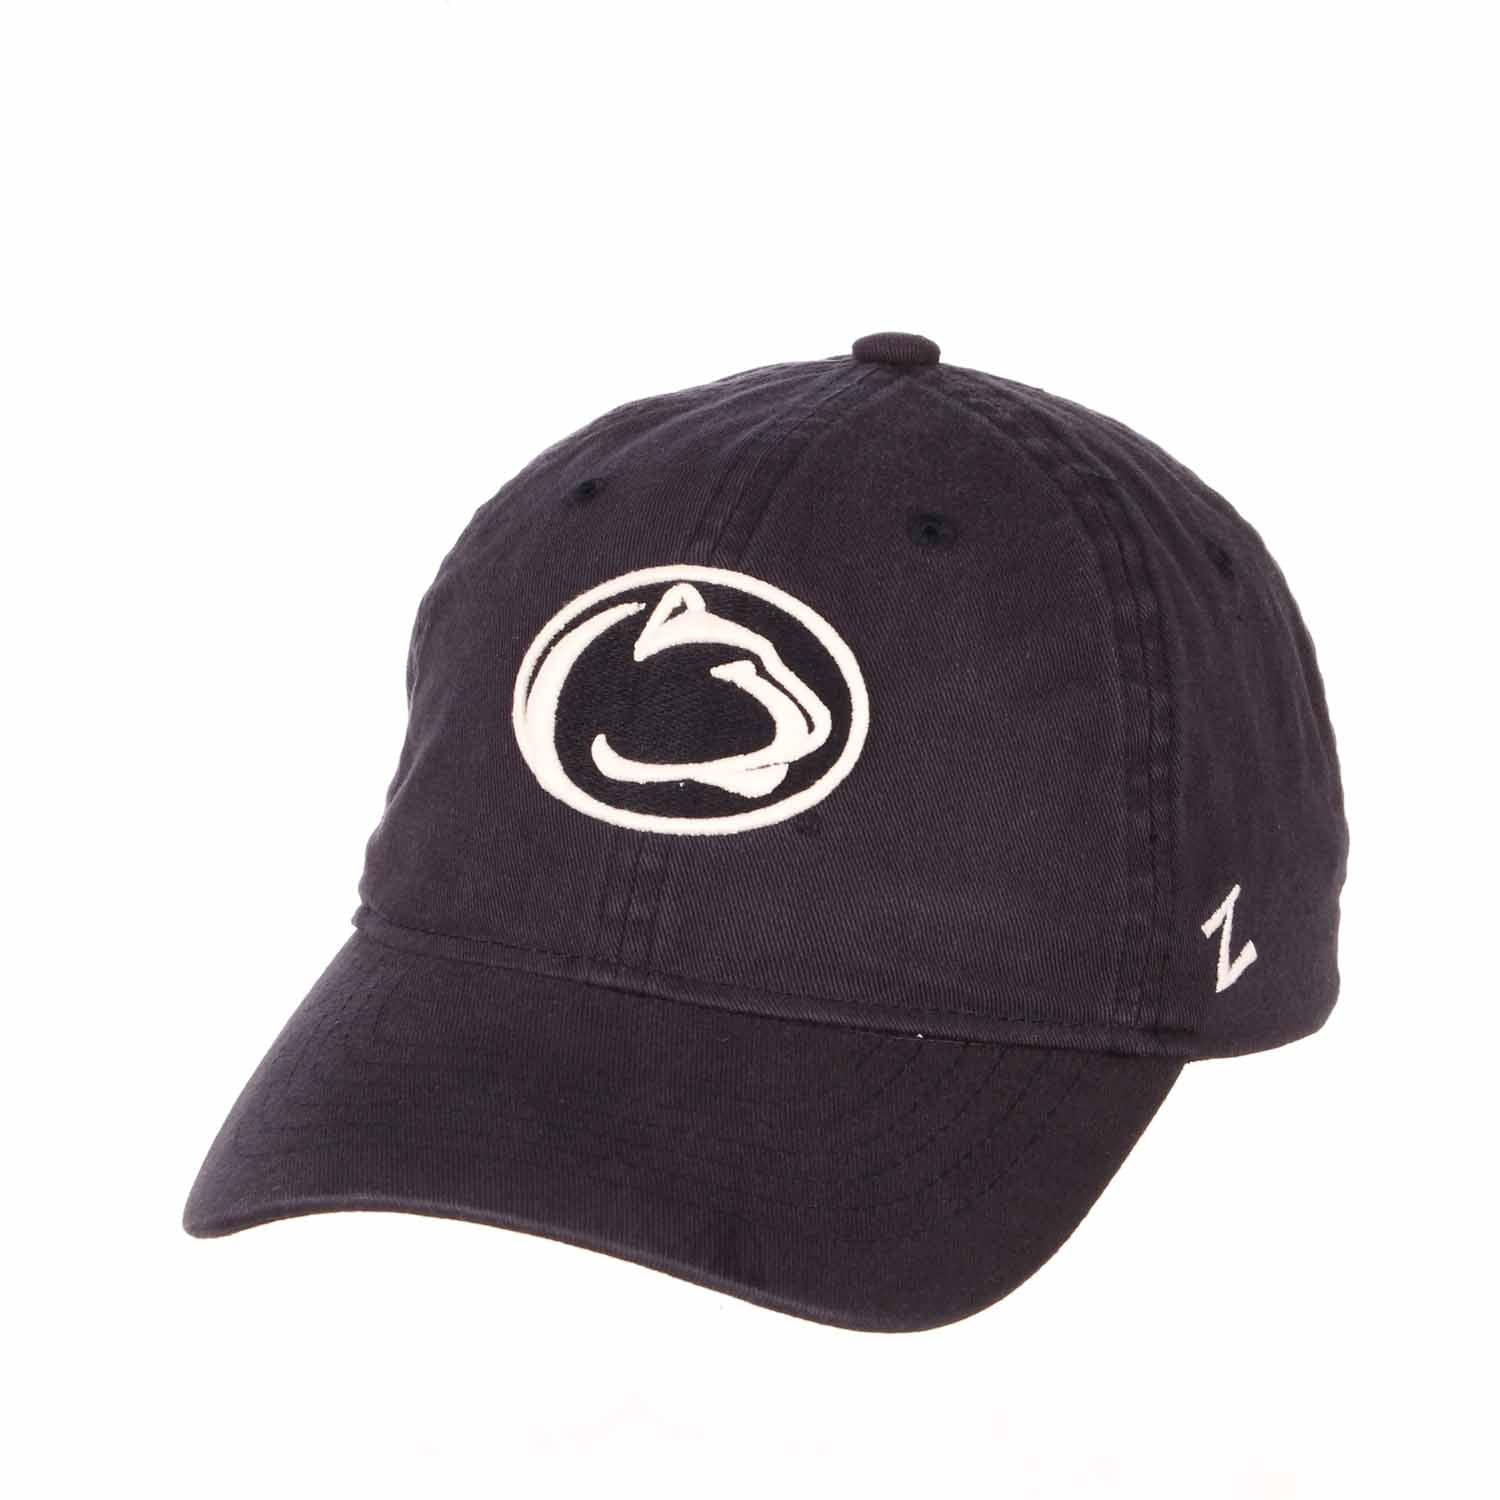 Adult NCAA All-American Relaxed Adjustable Hat (Penn State Nittany Lions - Navy)